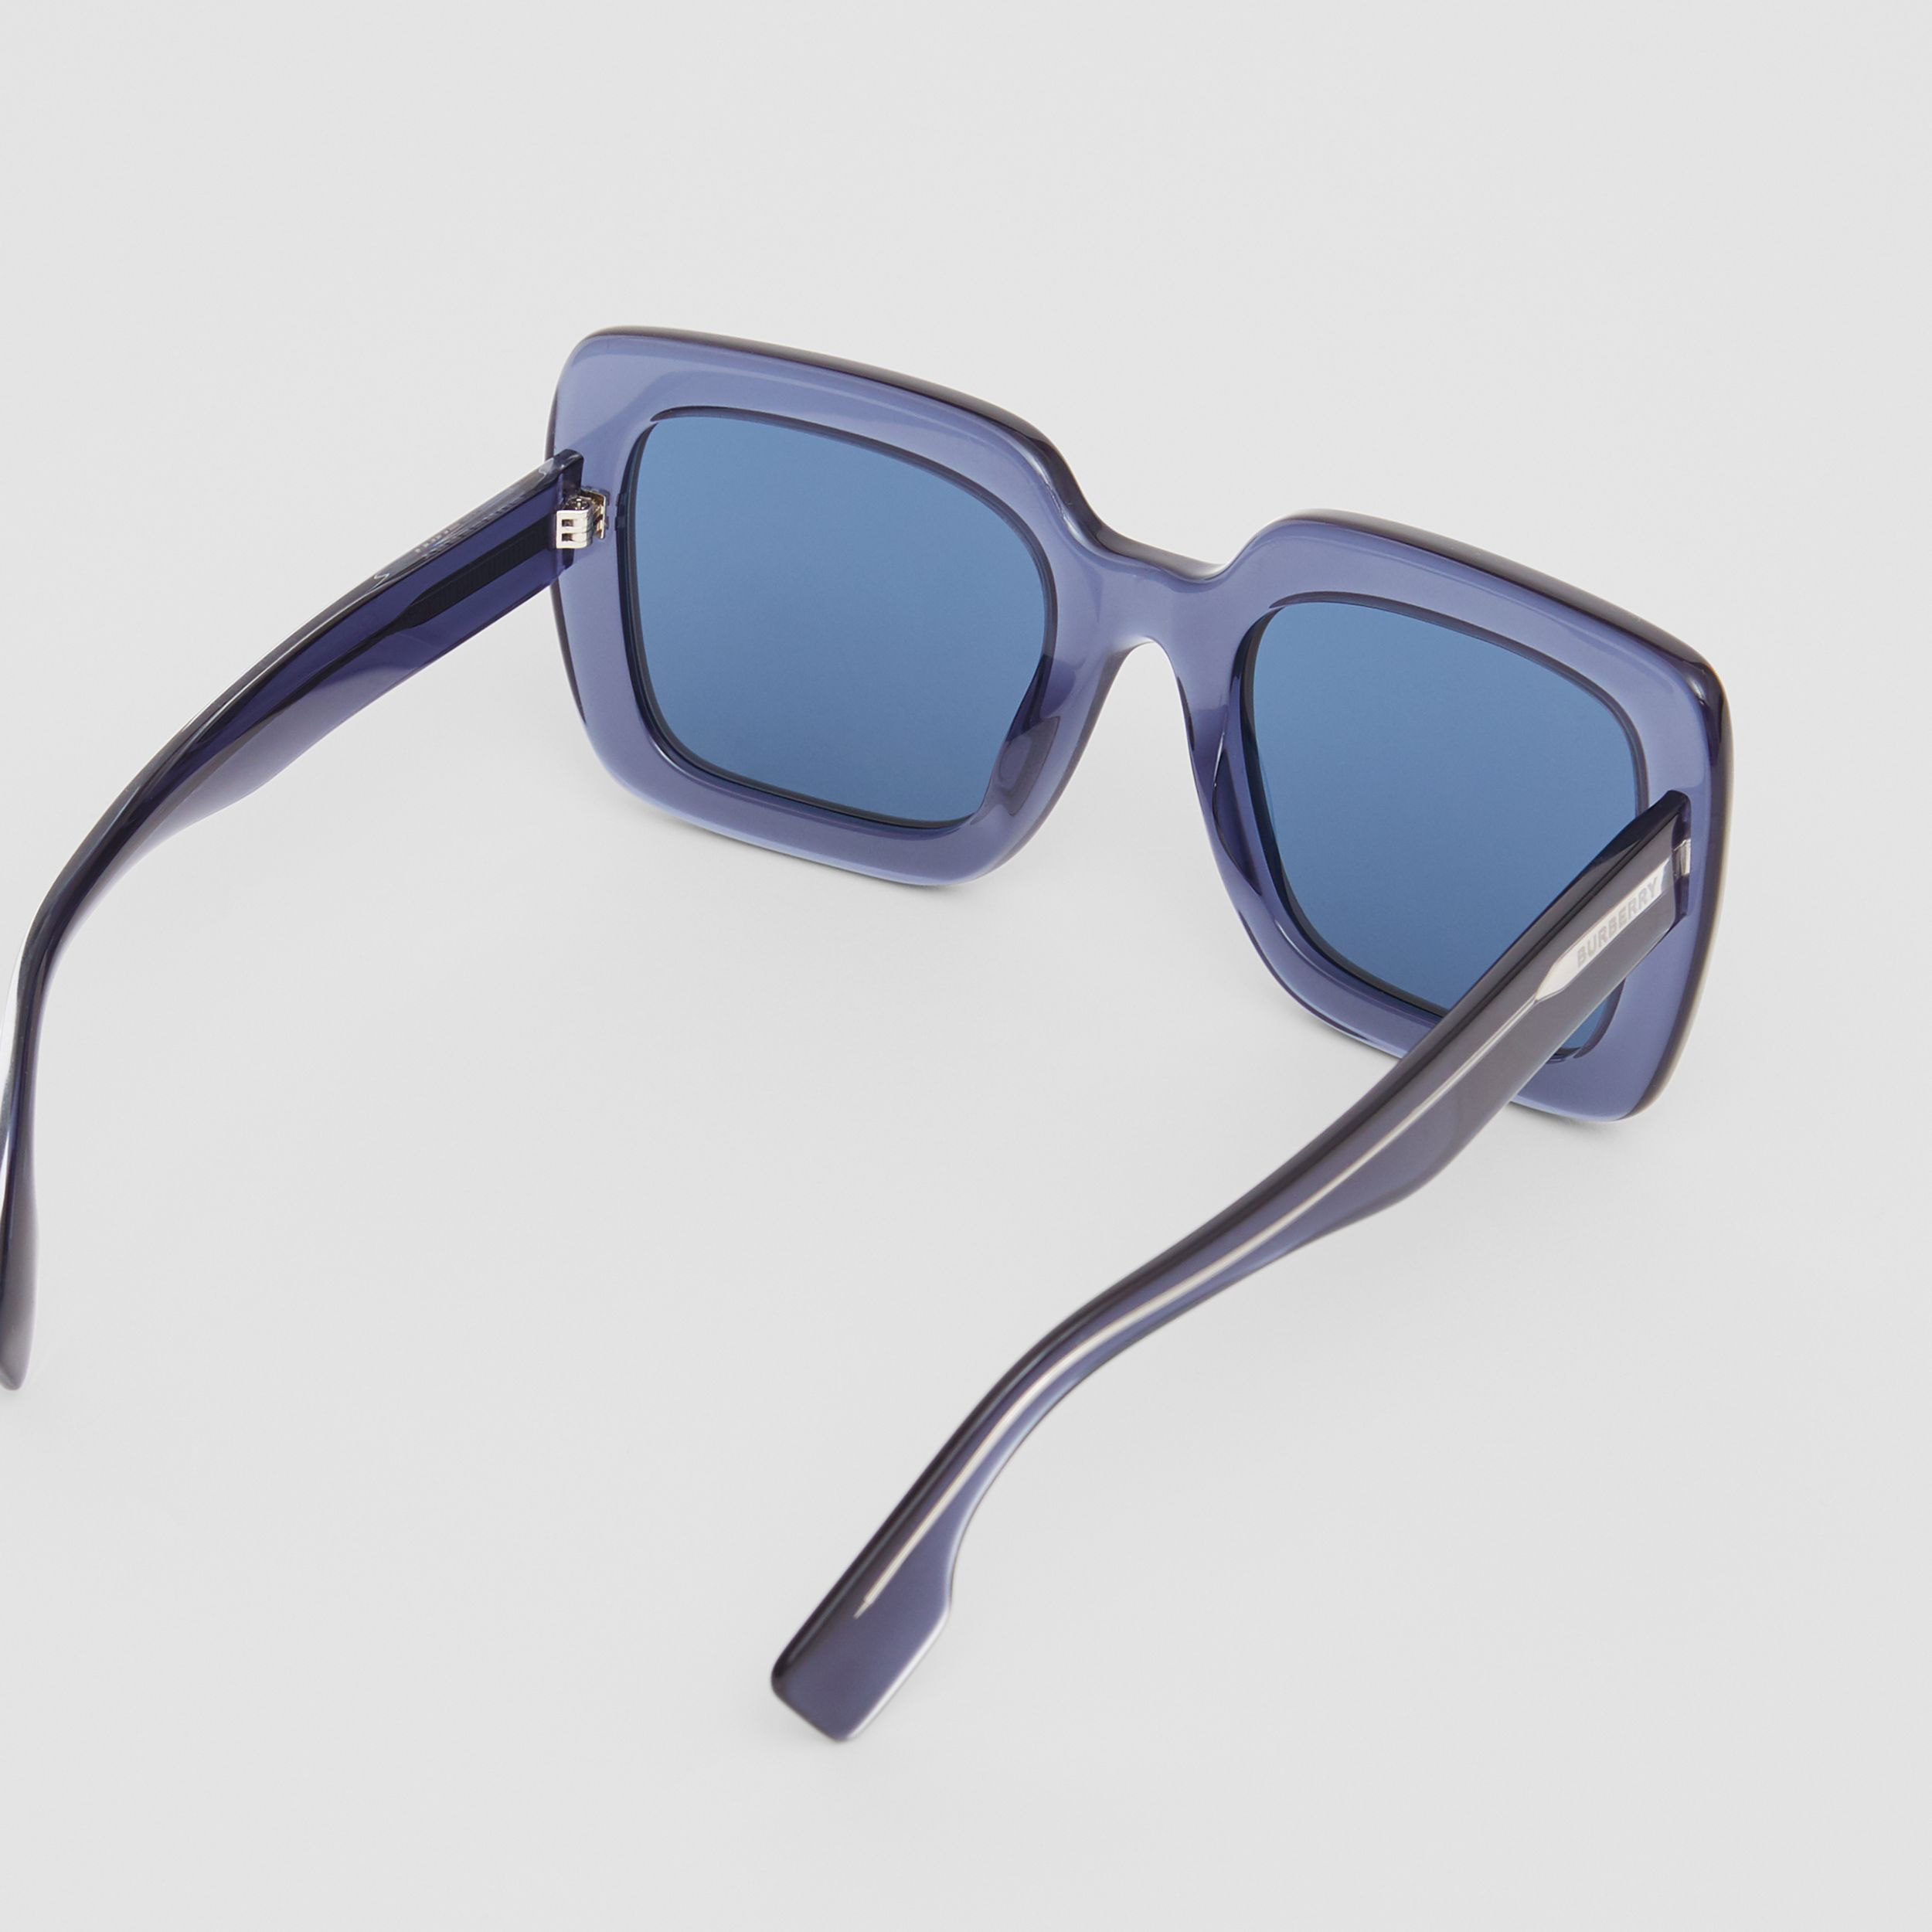 Oversized Square Frame Sunglasses in Blue - Women | Burberry - 4